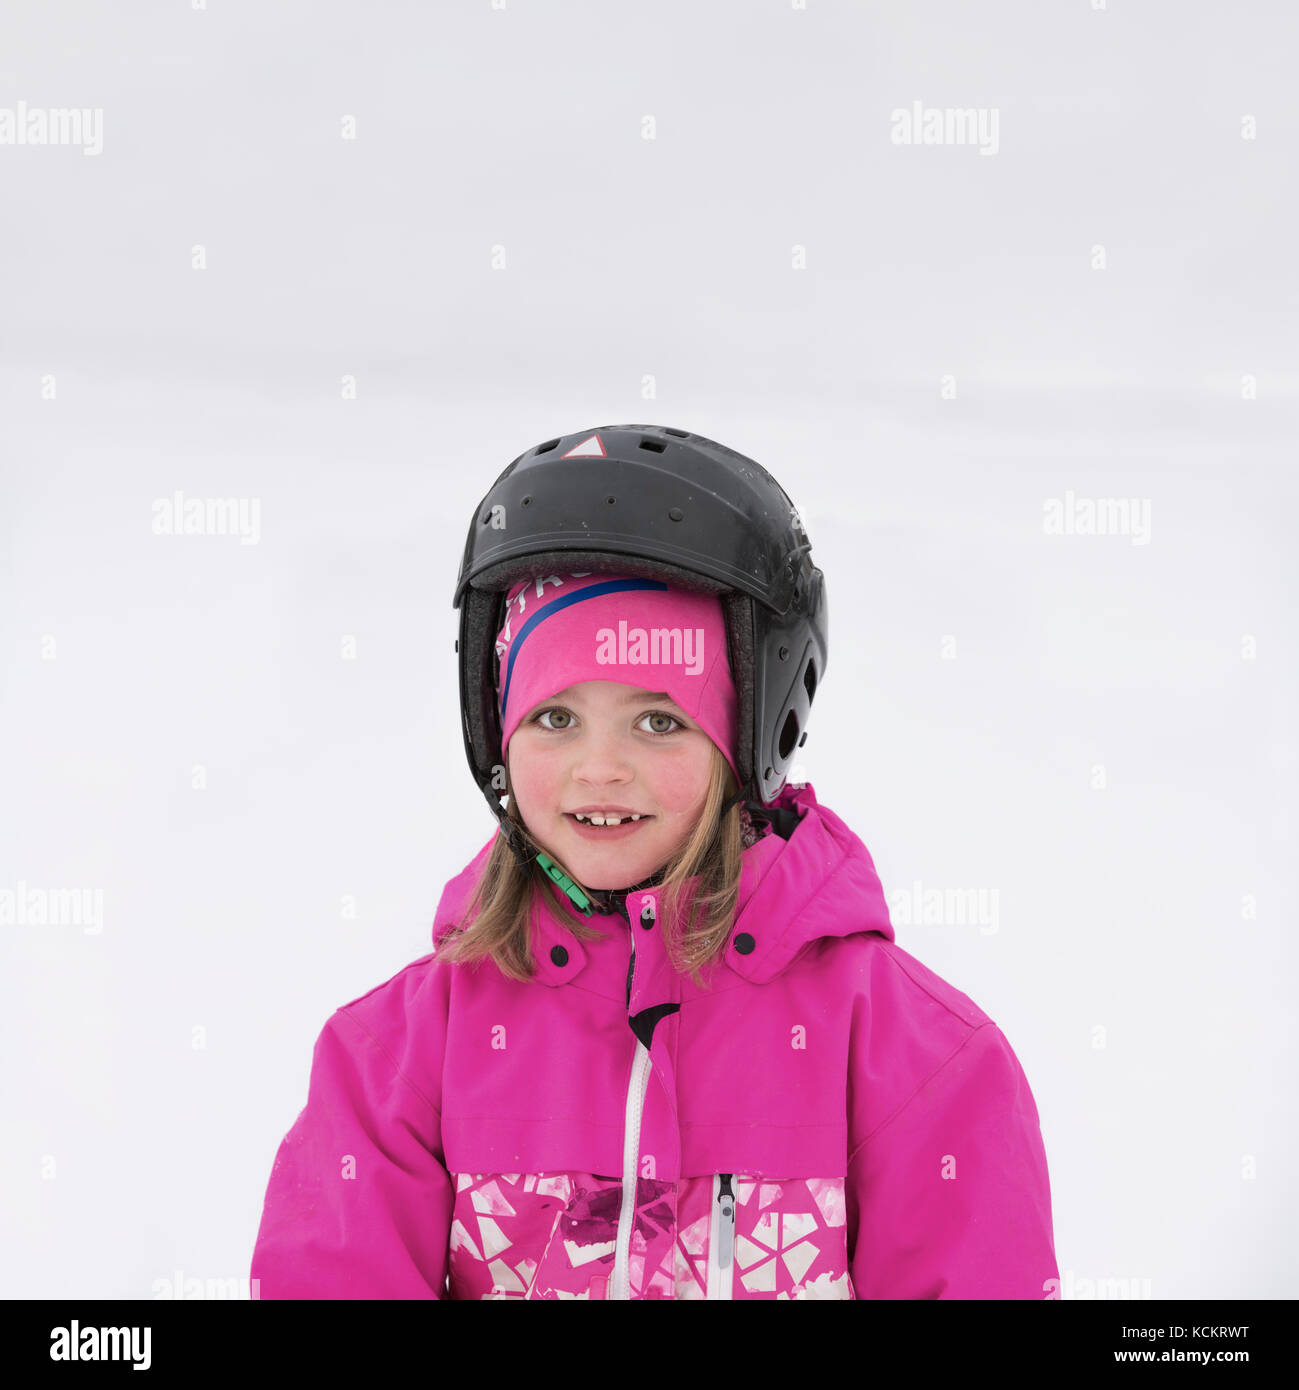 Eye contact portrait of young smiling girl with helmet in the snow outdoors - Stock Image